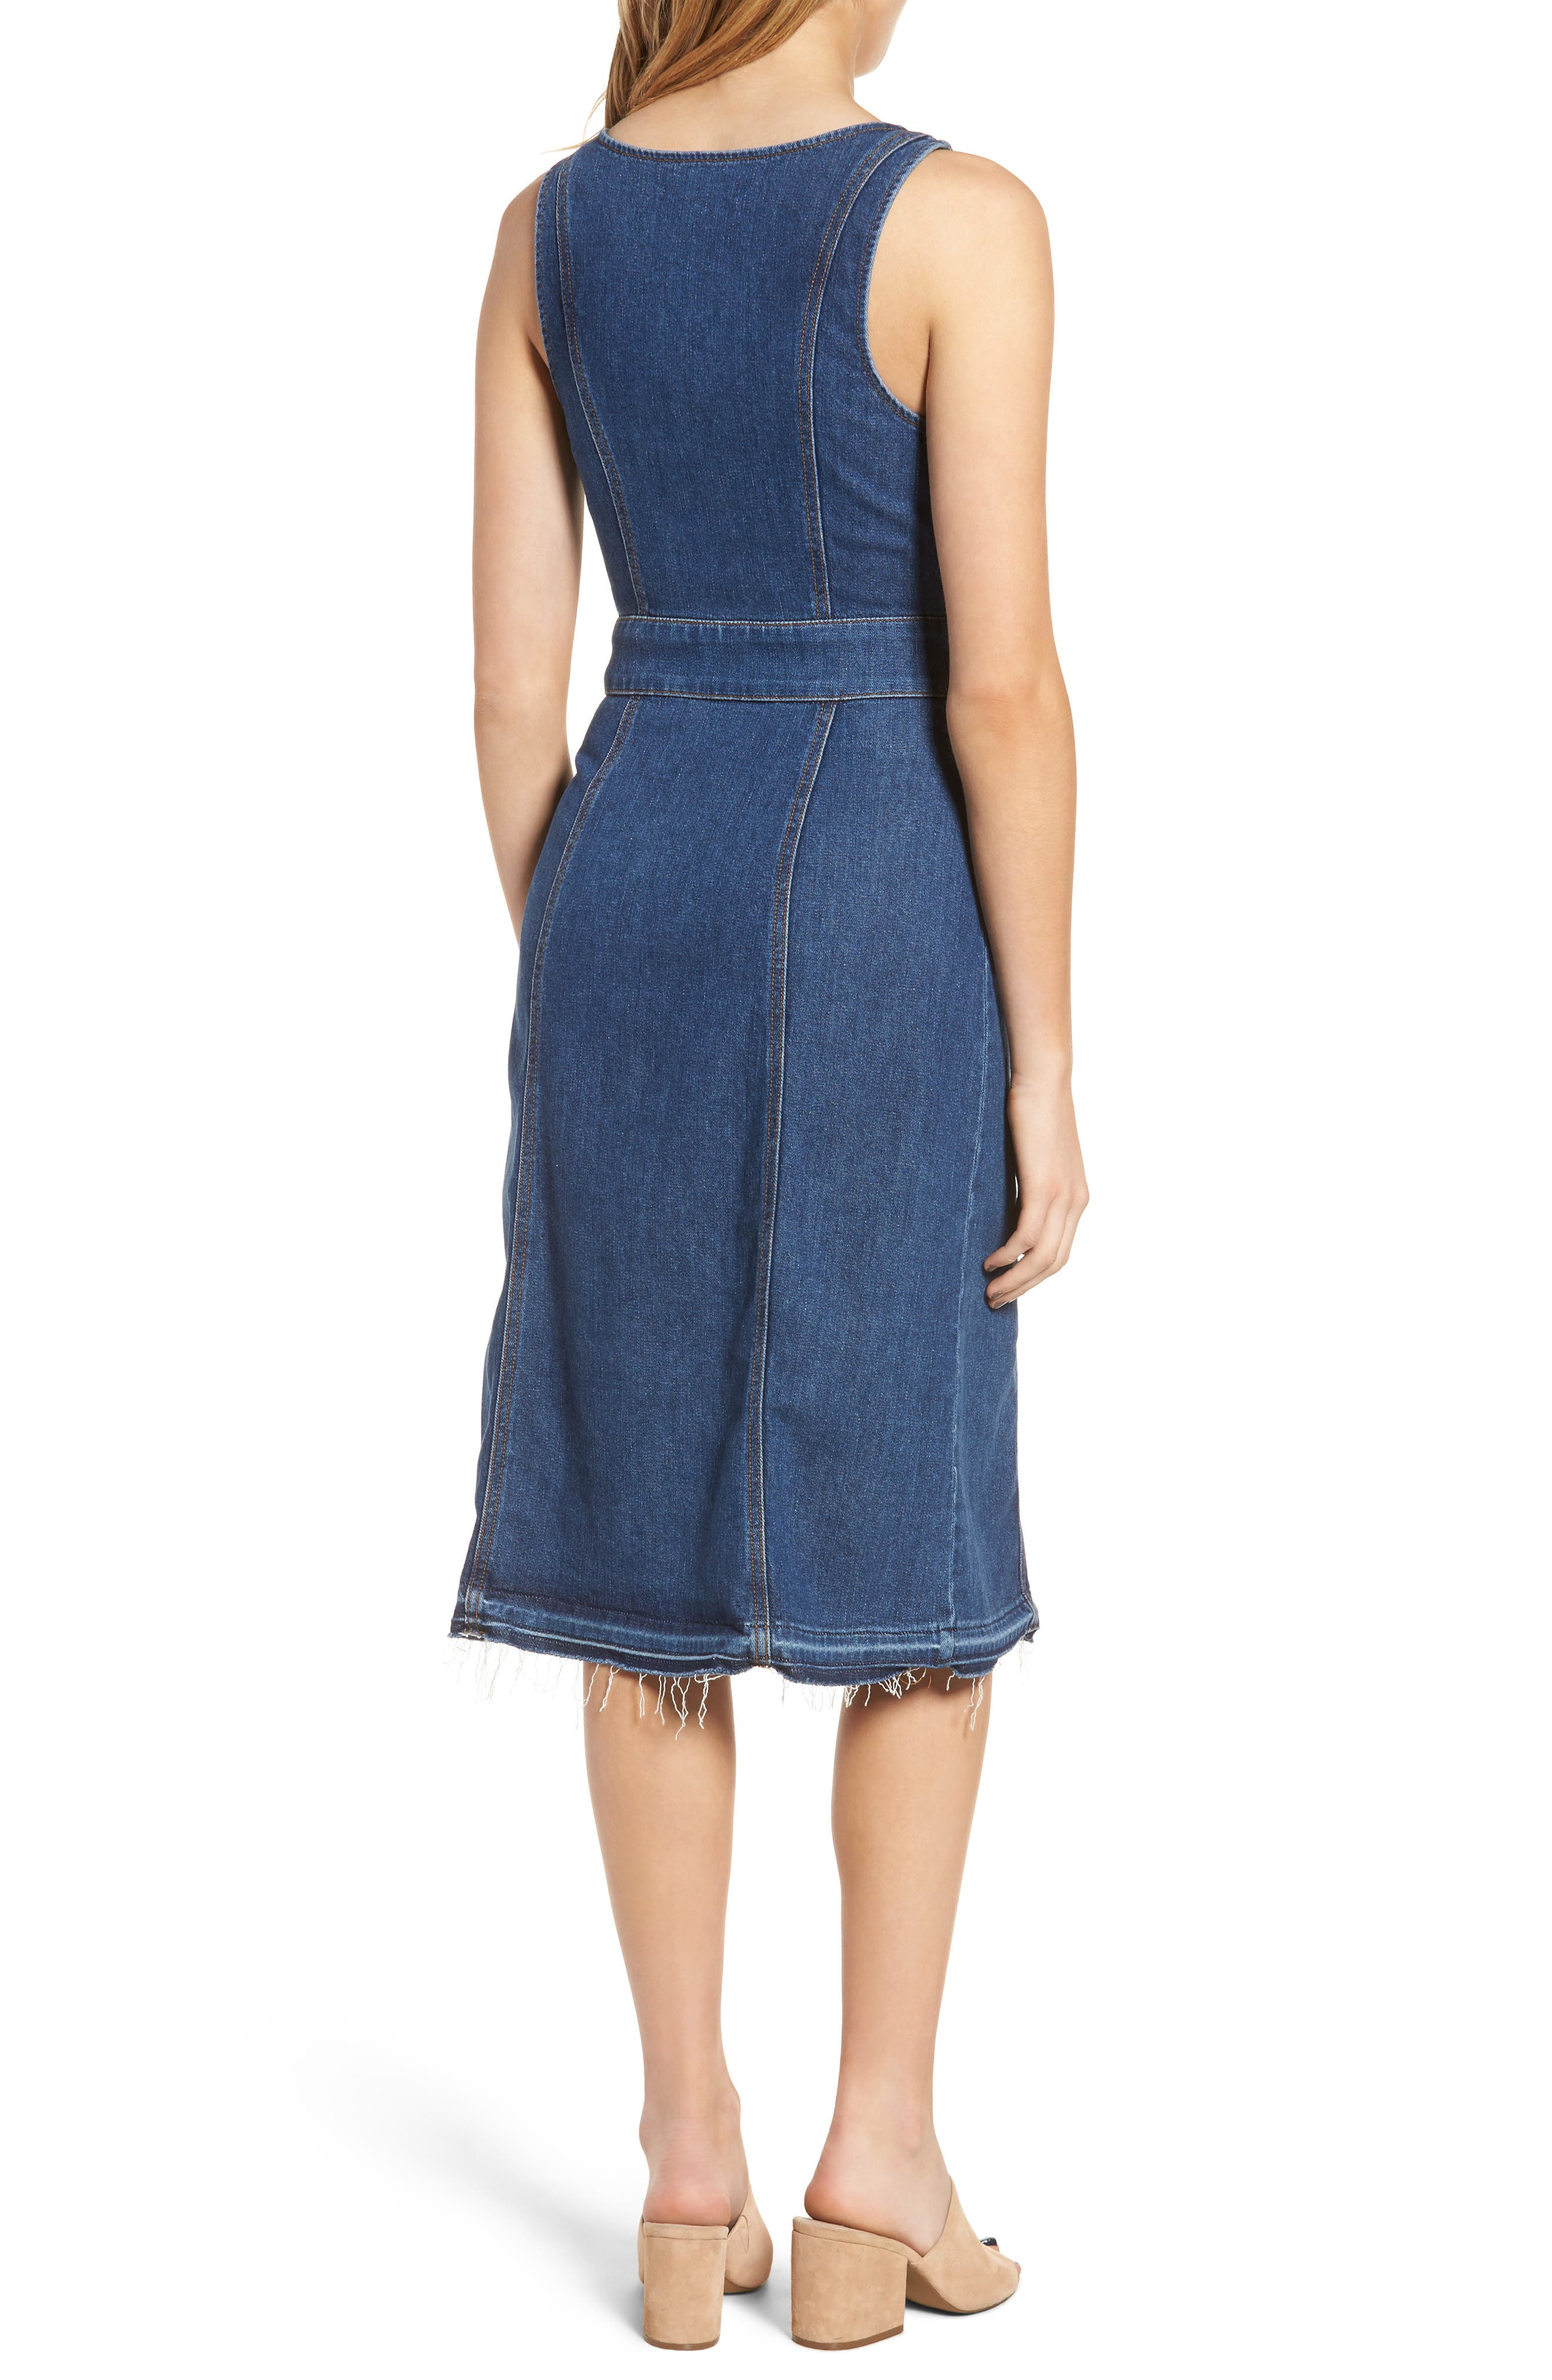 Sleeveless Denim Dress,                             Alternate thumbnail 2, color,                             Sunrise- Lxr4